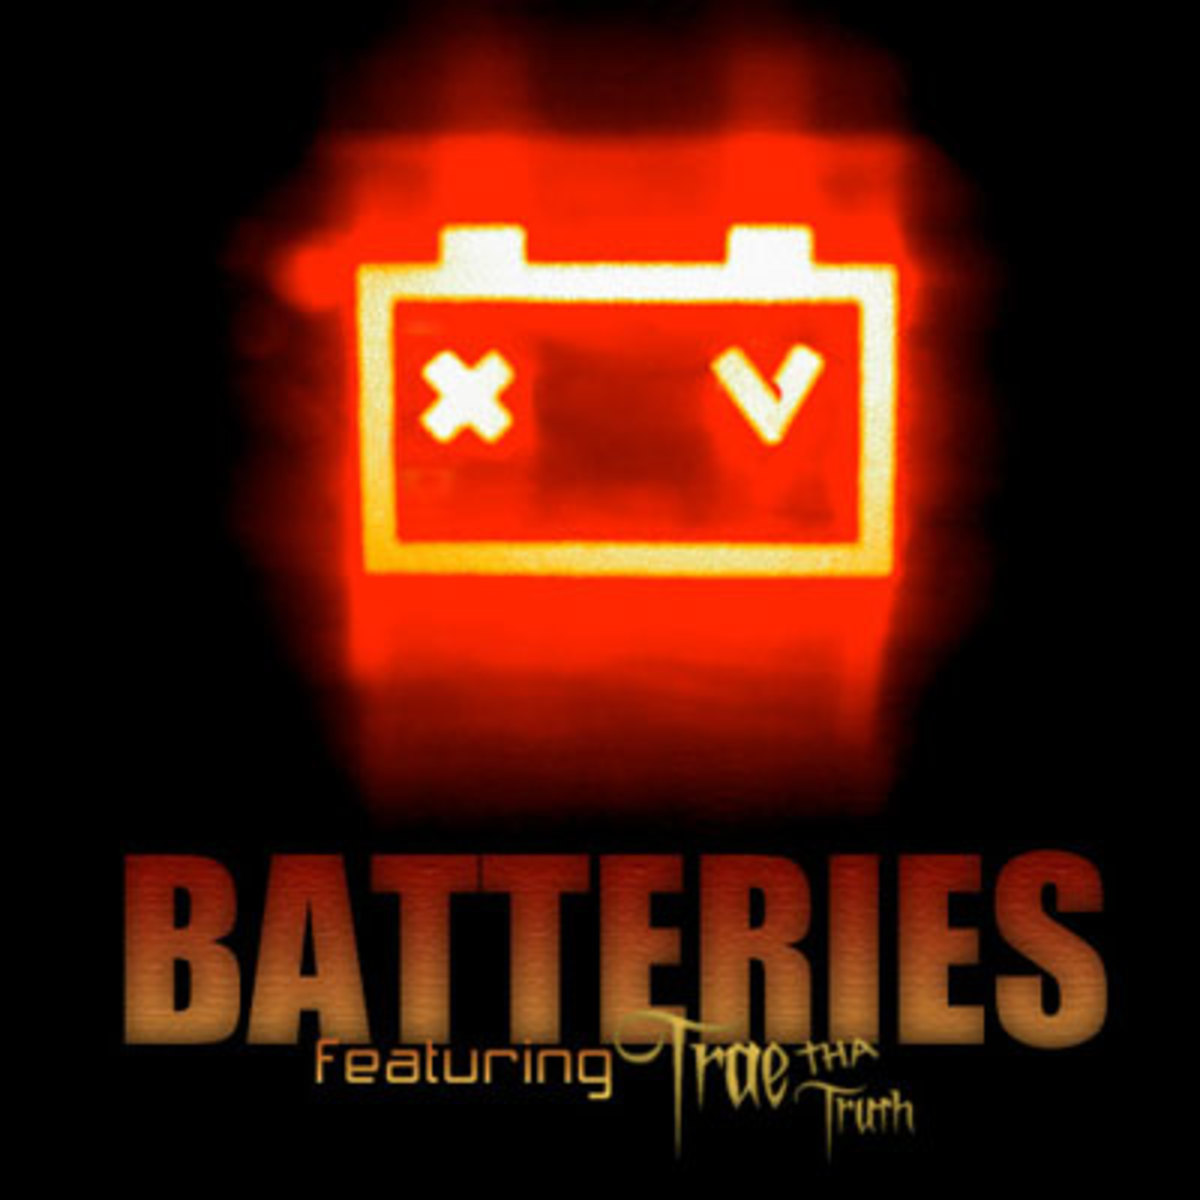 xv-batteries.jpg